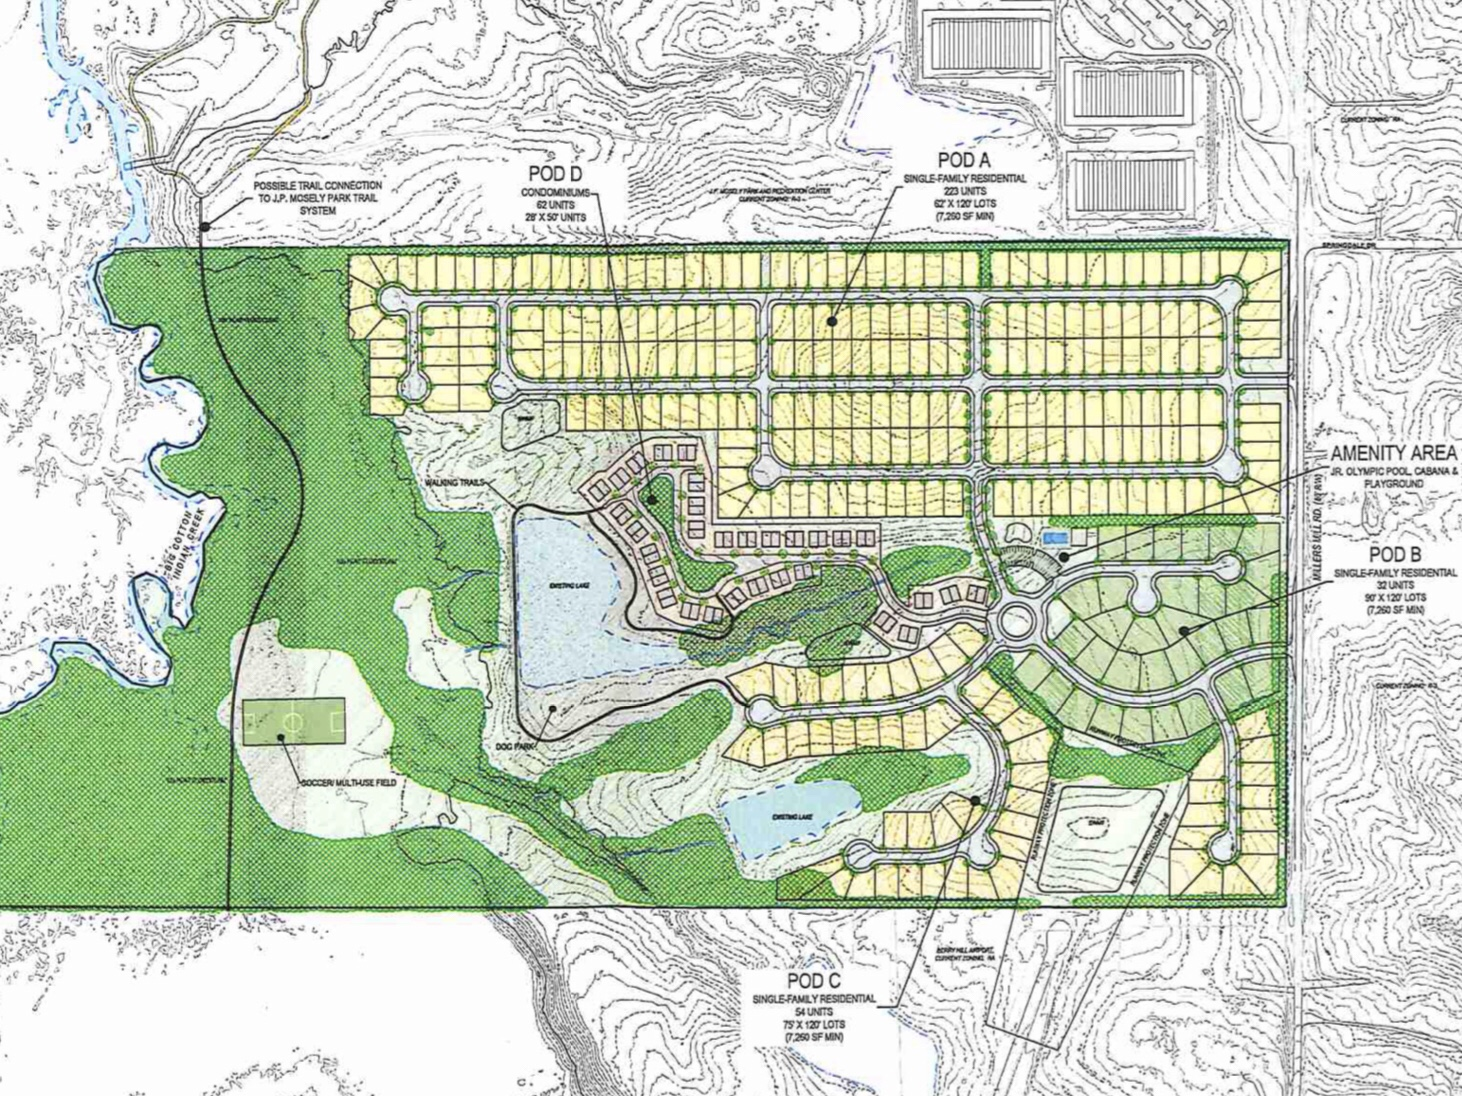 Concept site plan for Millers Mill Road RS development (Moore Bass Consulting photo)